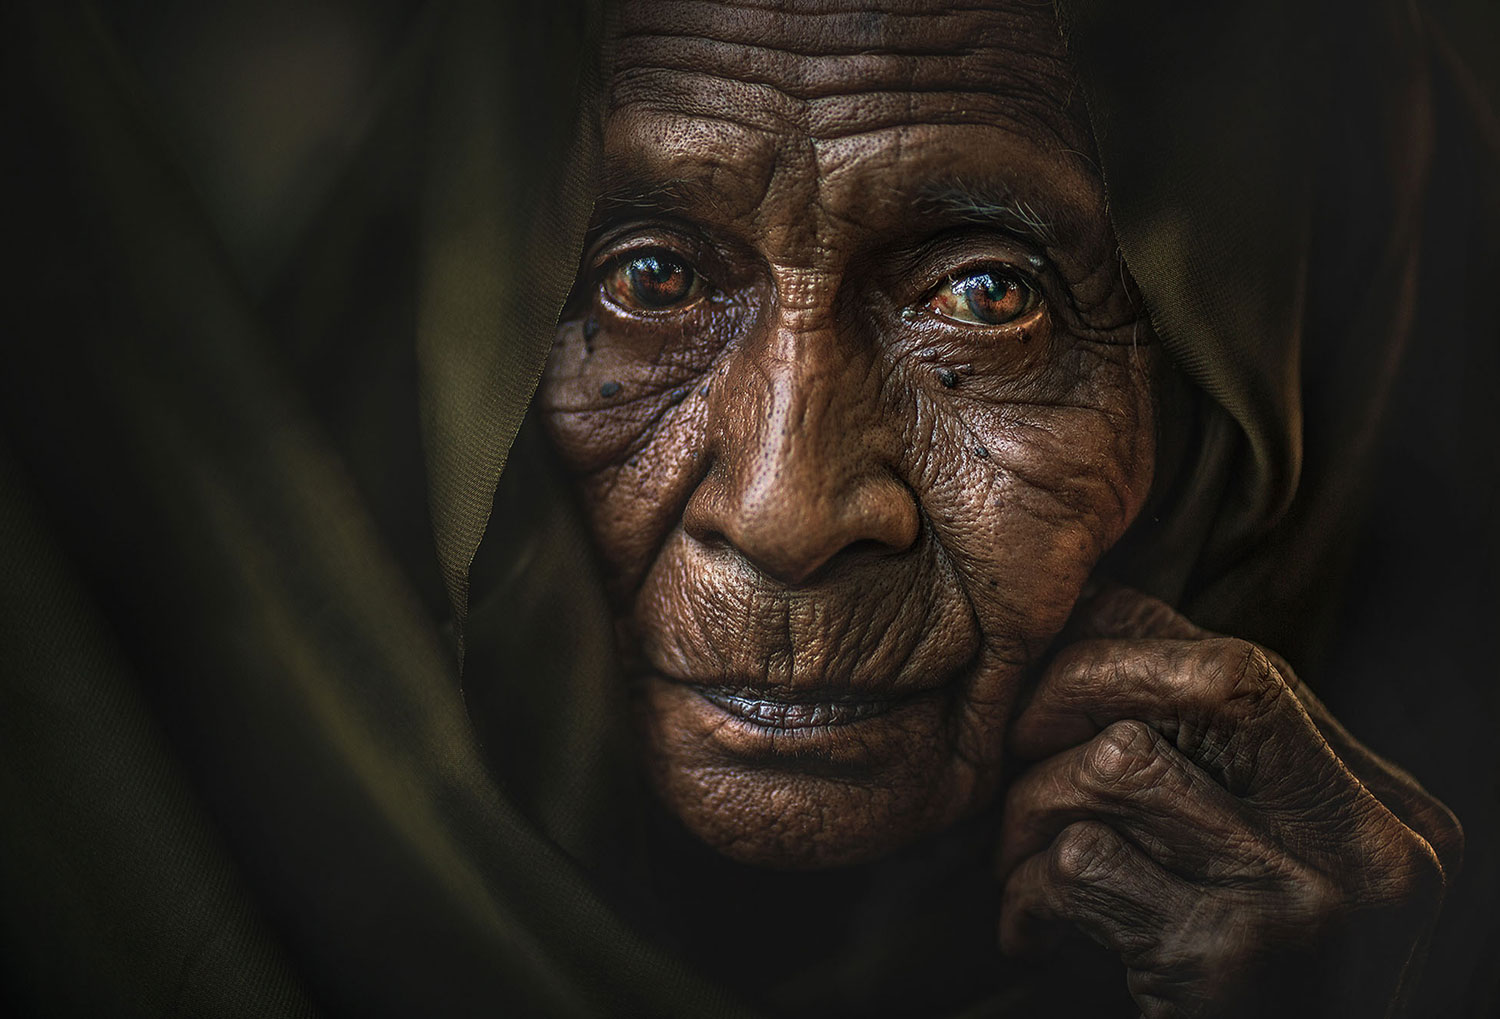 portrait photography homeless by muhamad salehbin